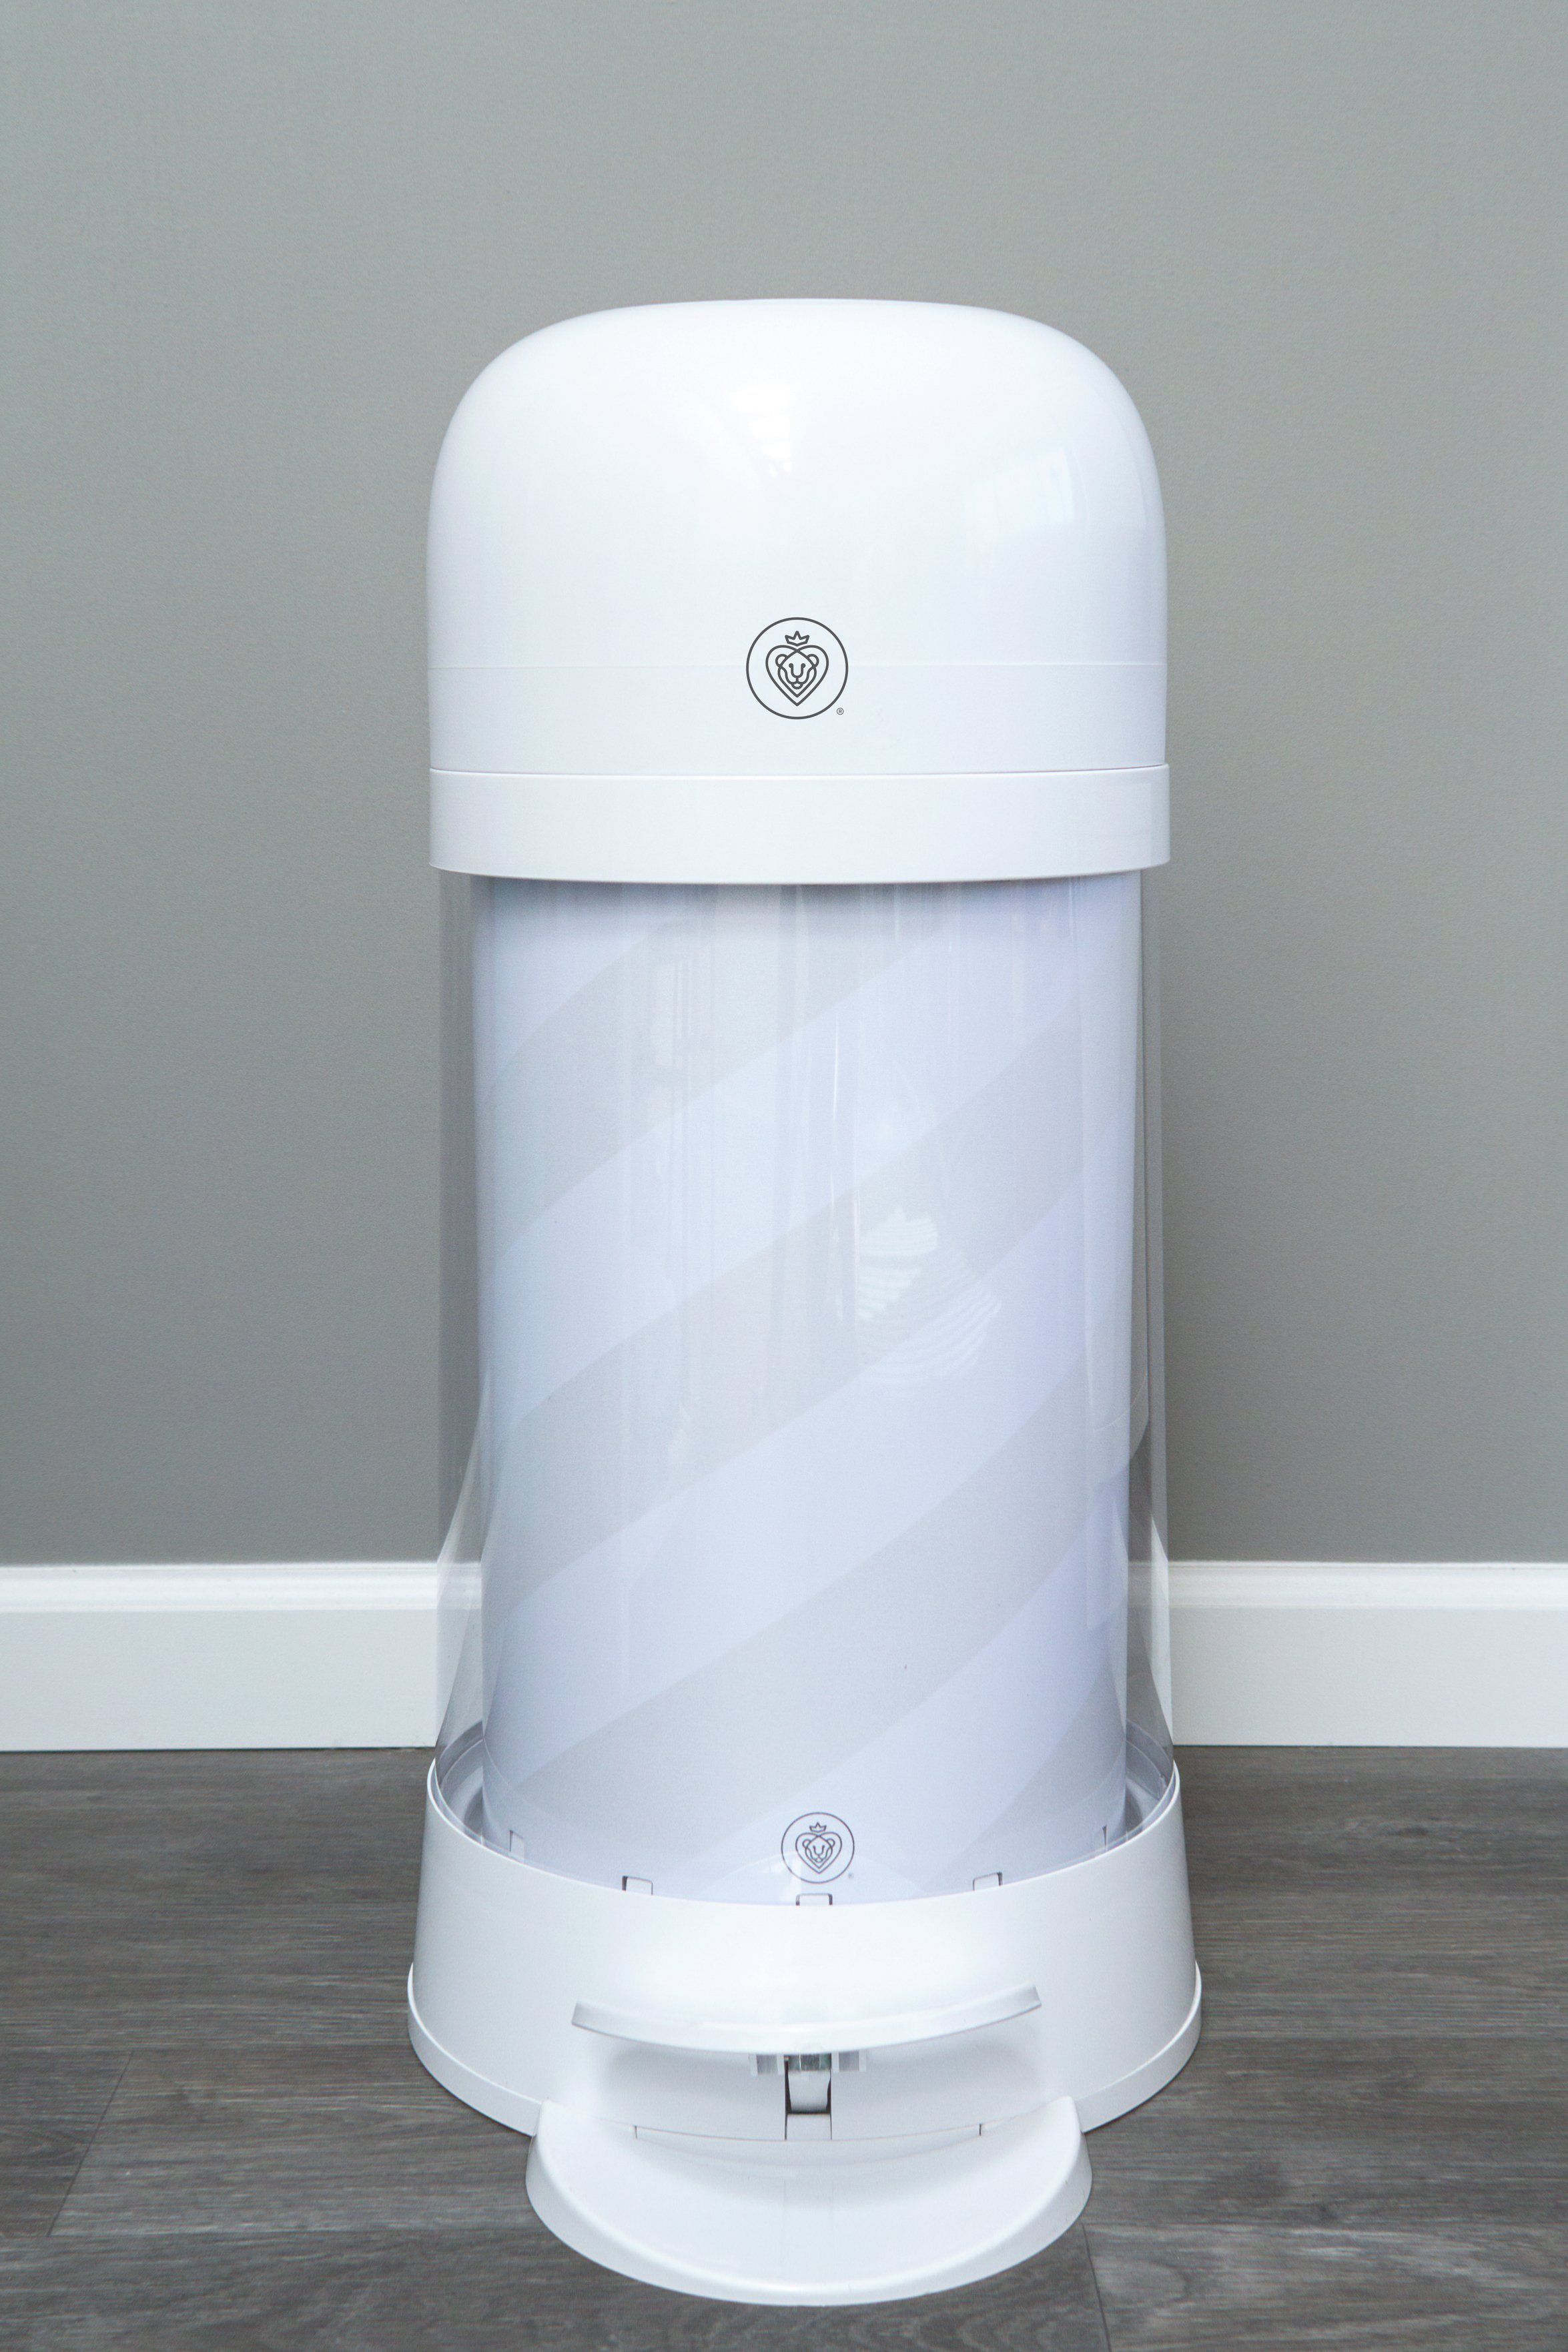 Prince Lionheart Twister Nappy Disposal System - White